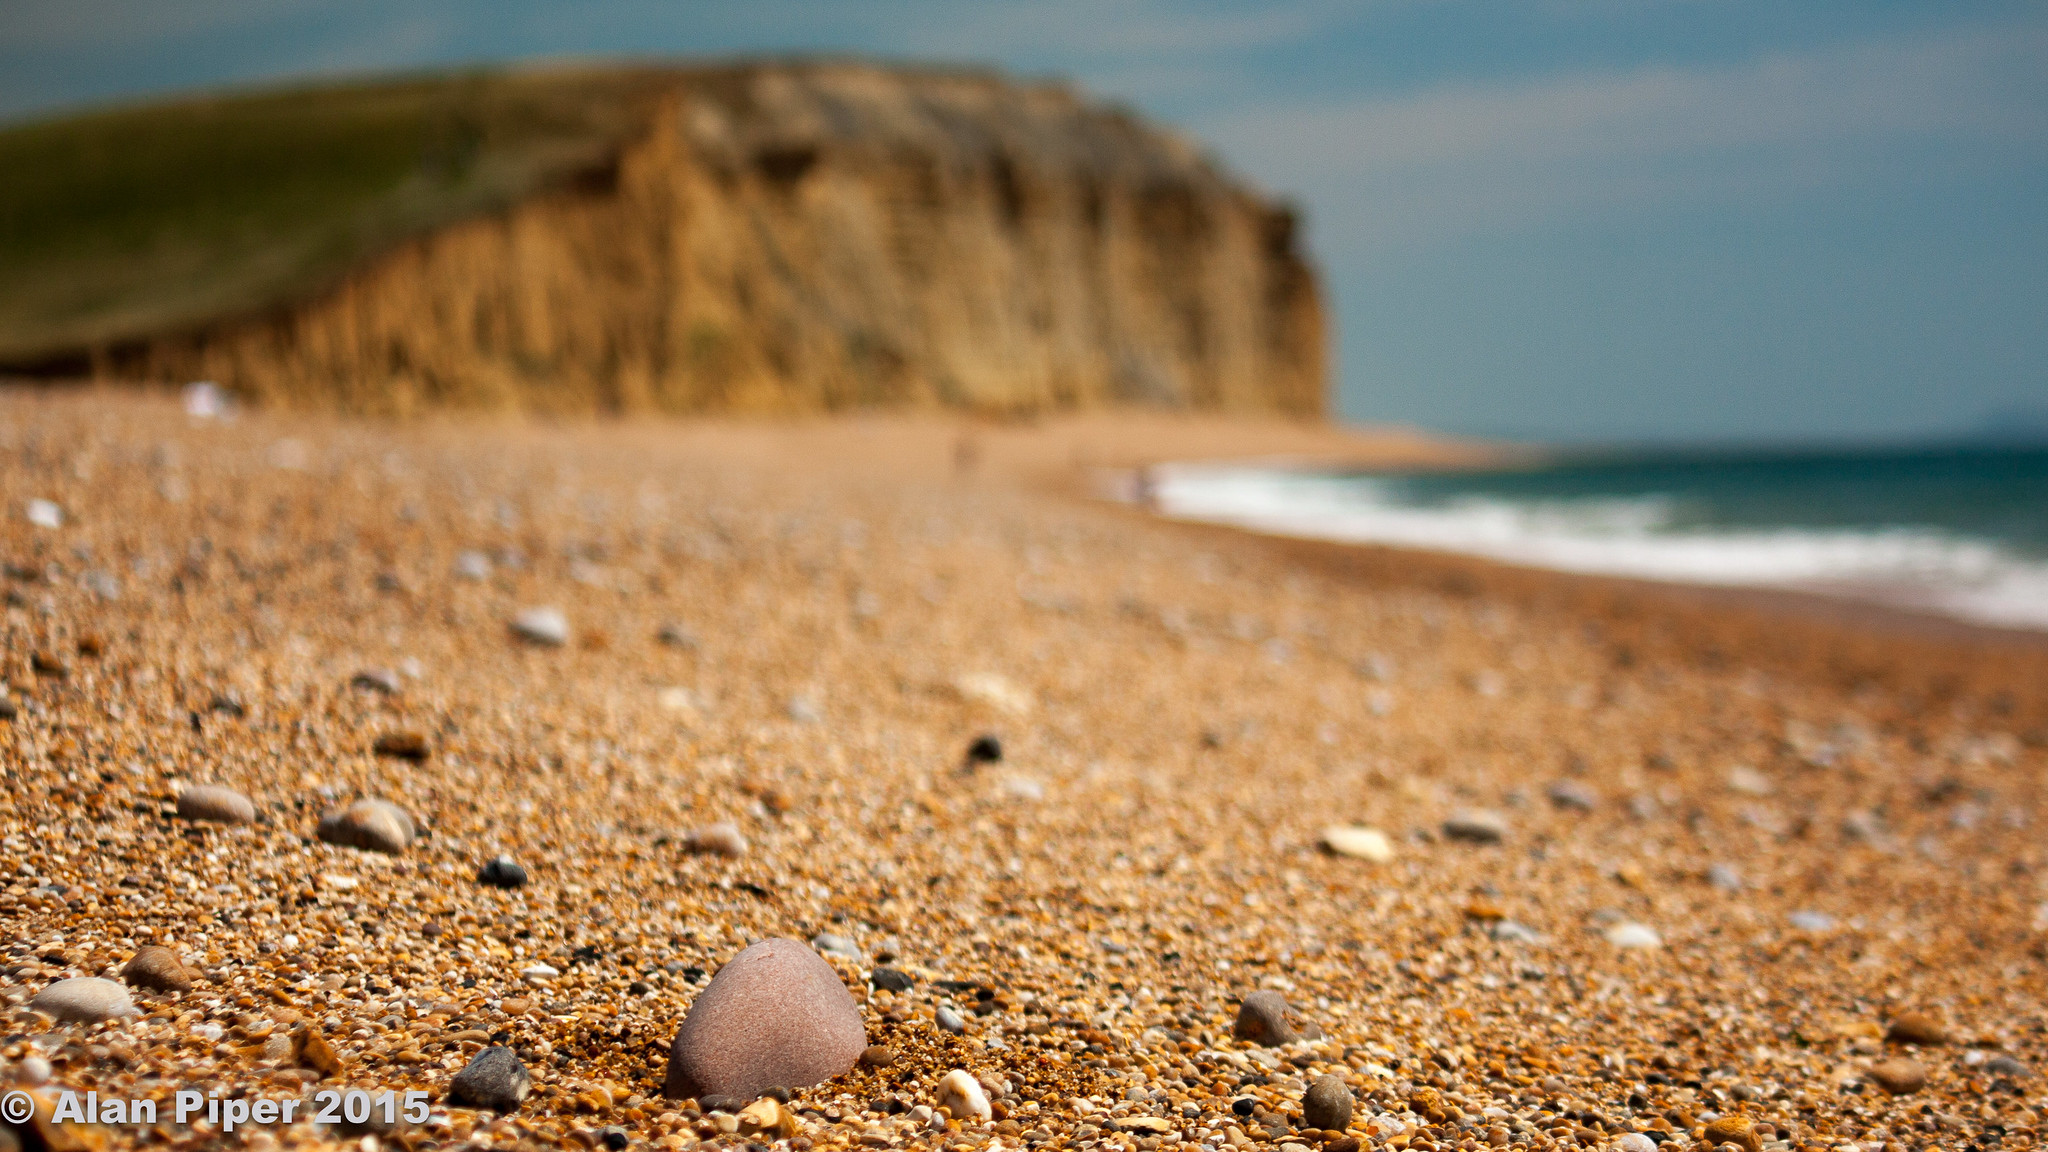 West Bay pebble close-up - Alan Piper